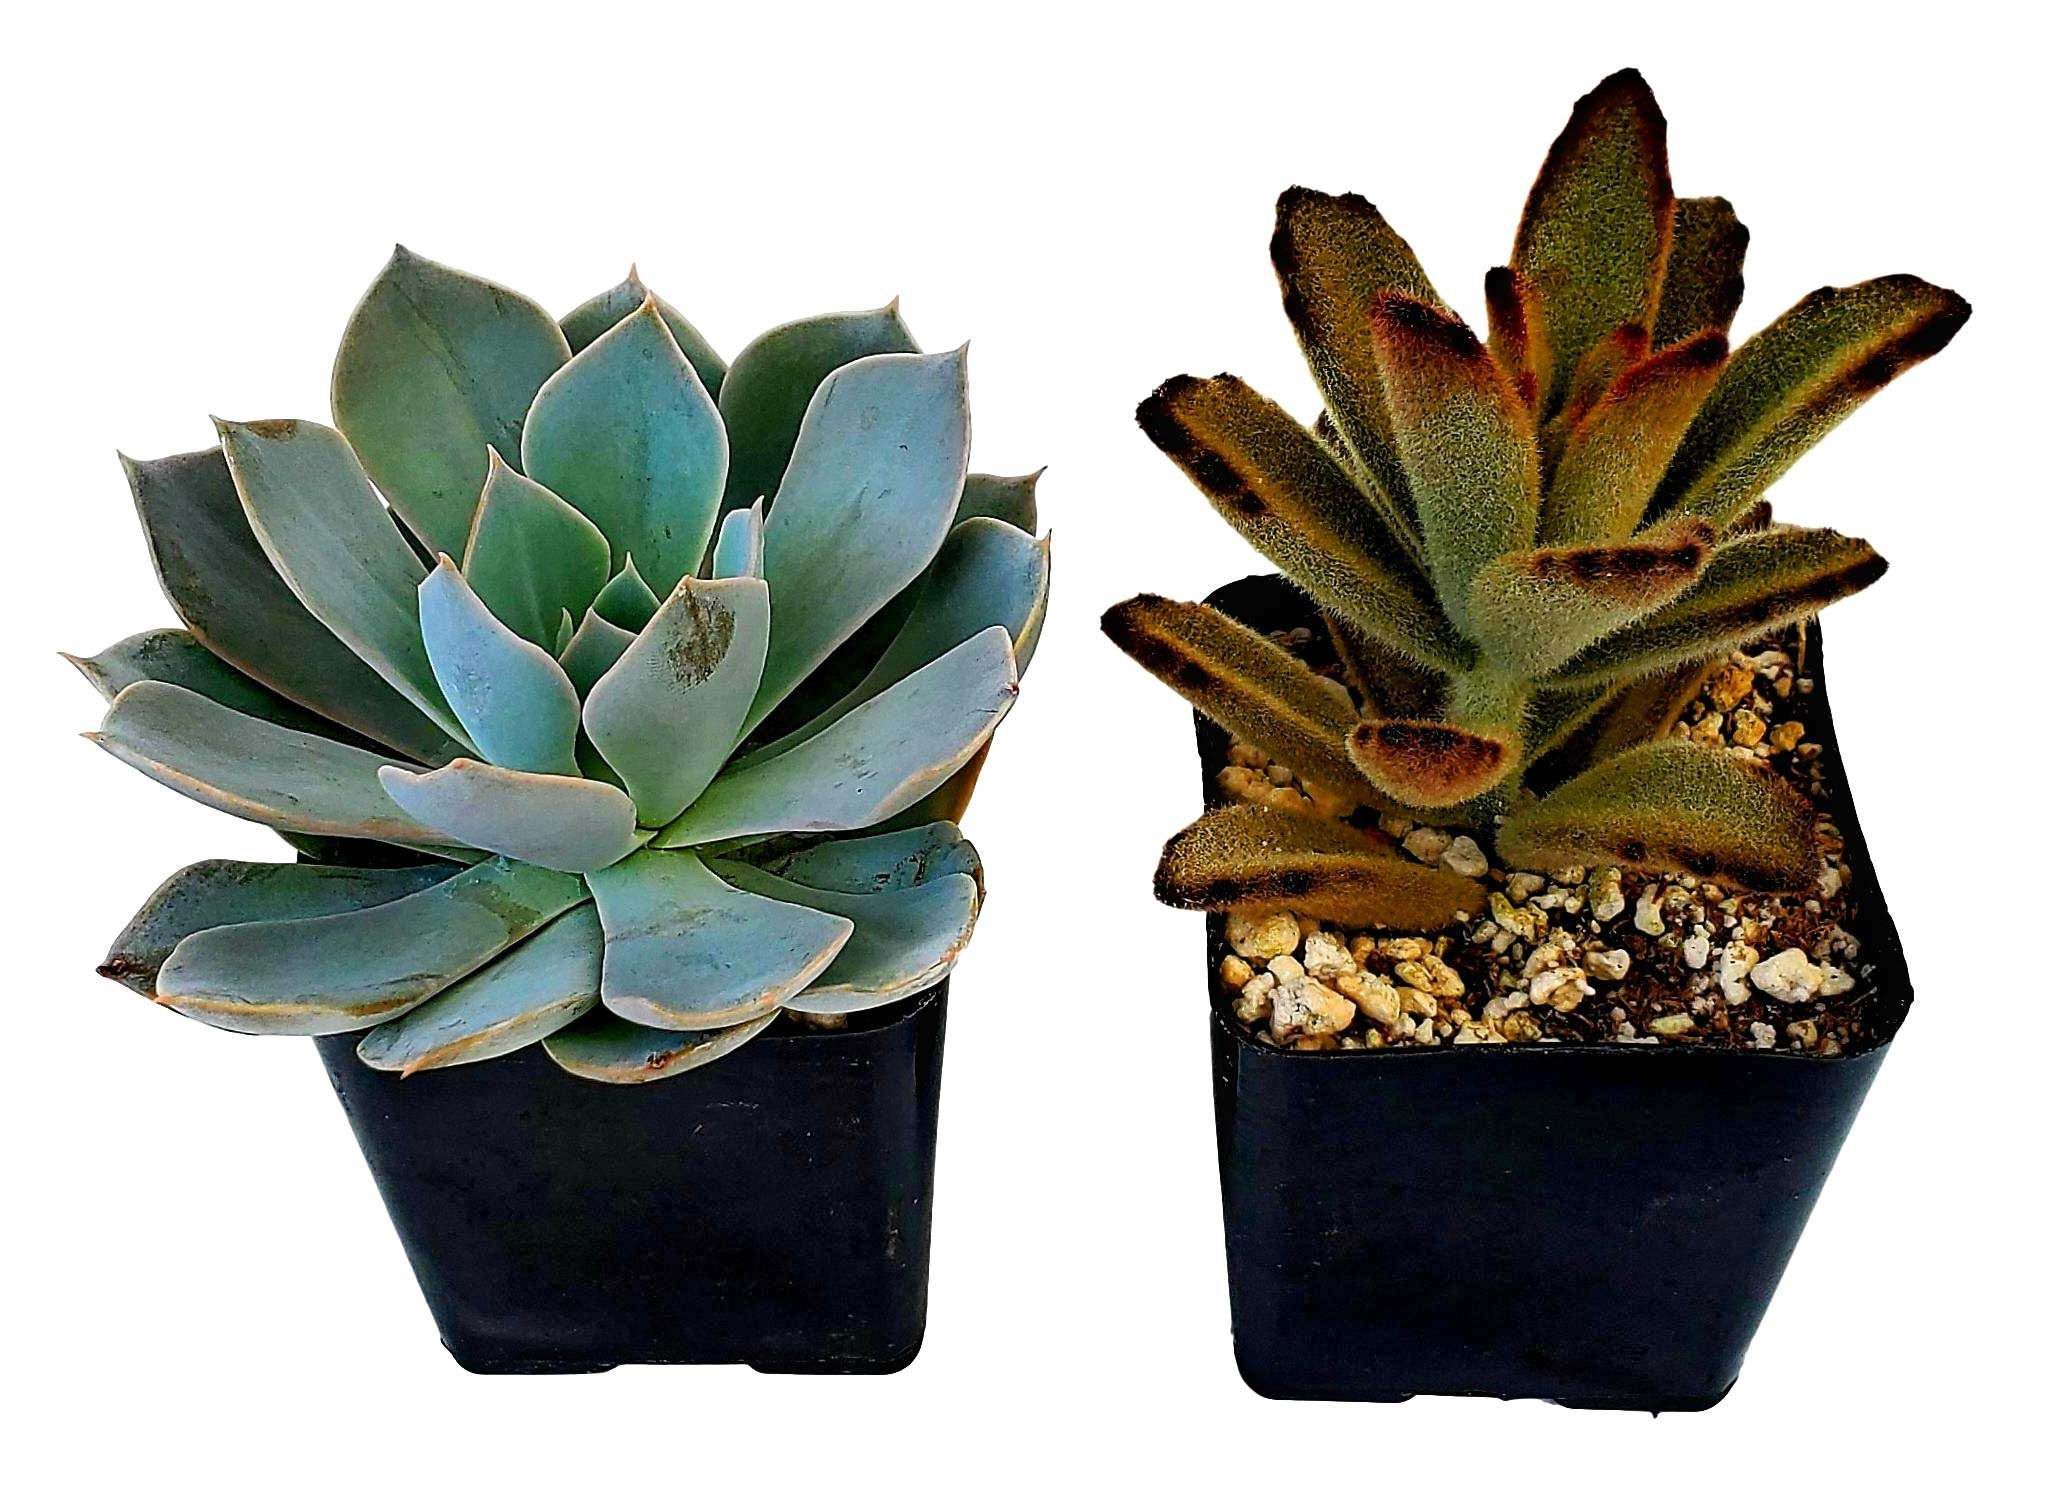 FATPLANTS Succulent Plants in Gift Box | Rooted in 2 inch Planter Pots with Soil | Living Indoor or Outdoor Plants | Home Decor, Gifts, Shower & Wedding Decorations (2)